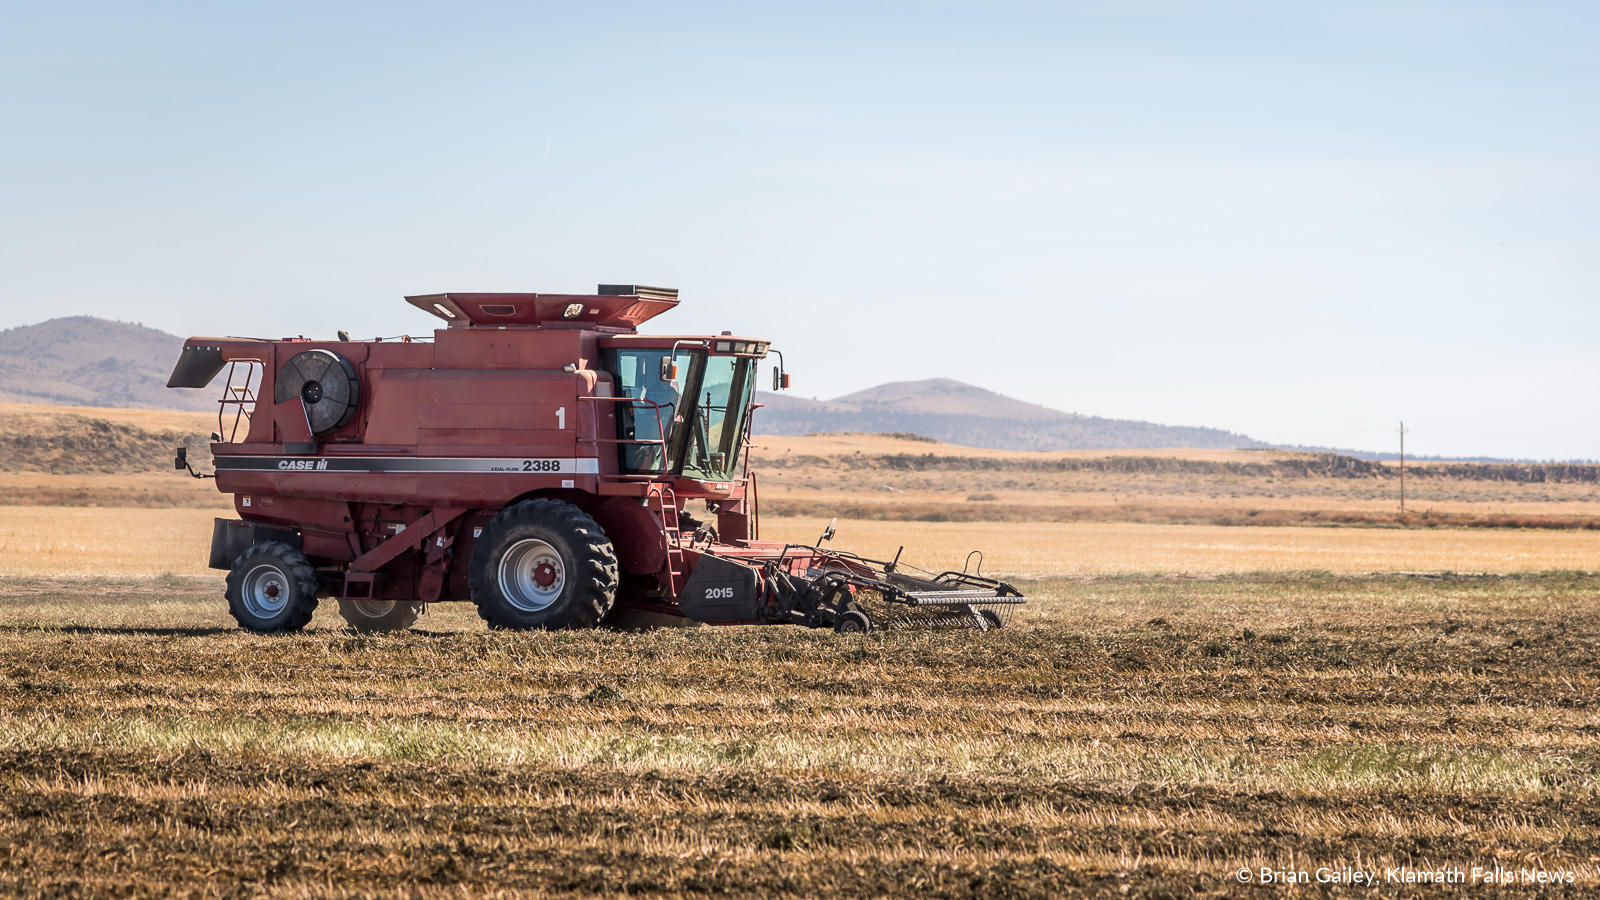 A custom built combine harvest mint leaves near Newell, California. Mint harvested on this farm is destined for tea in the European Union and for use as mint oil for food flavoring. September 27, 2018 (Brian Gailey)